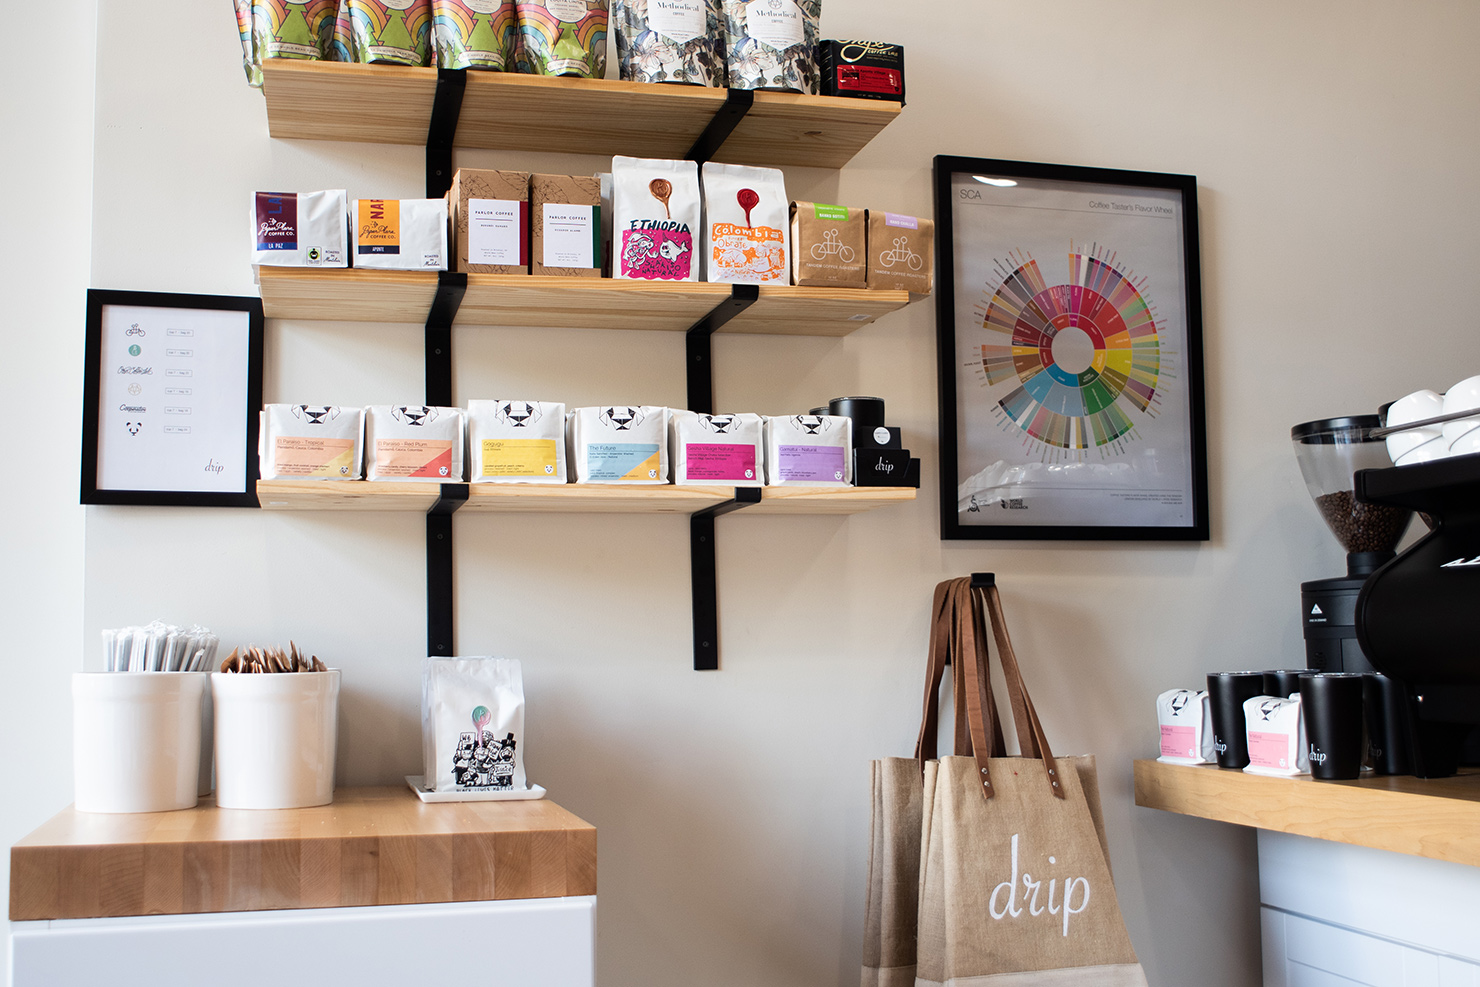 Drip Coffee Retail Coffee Low Jeremy Paul Hernandez